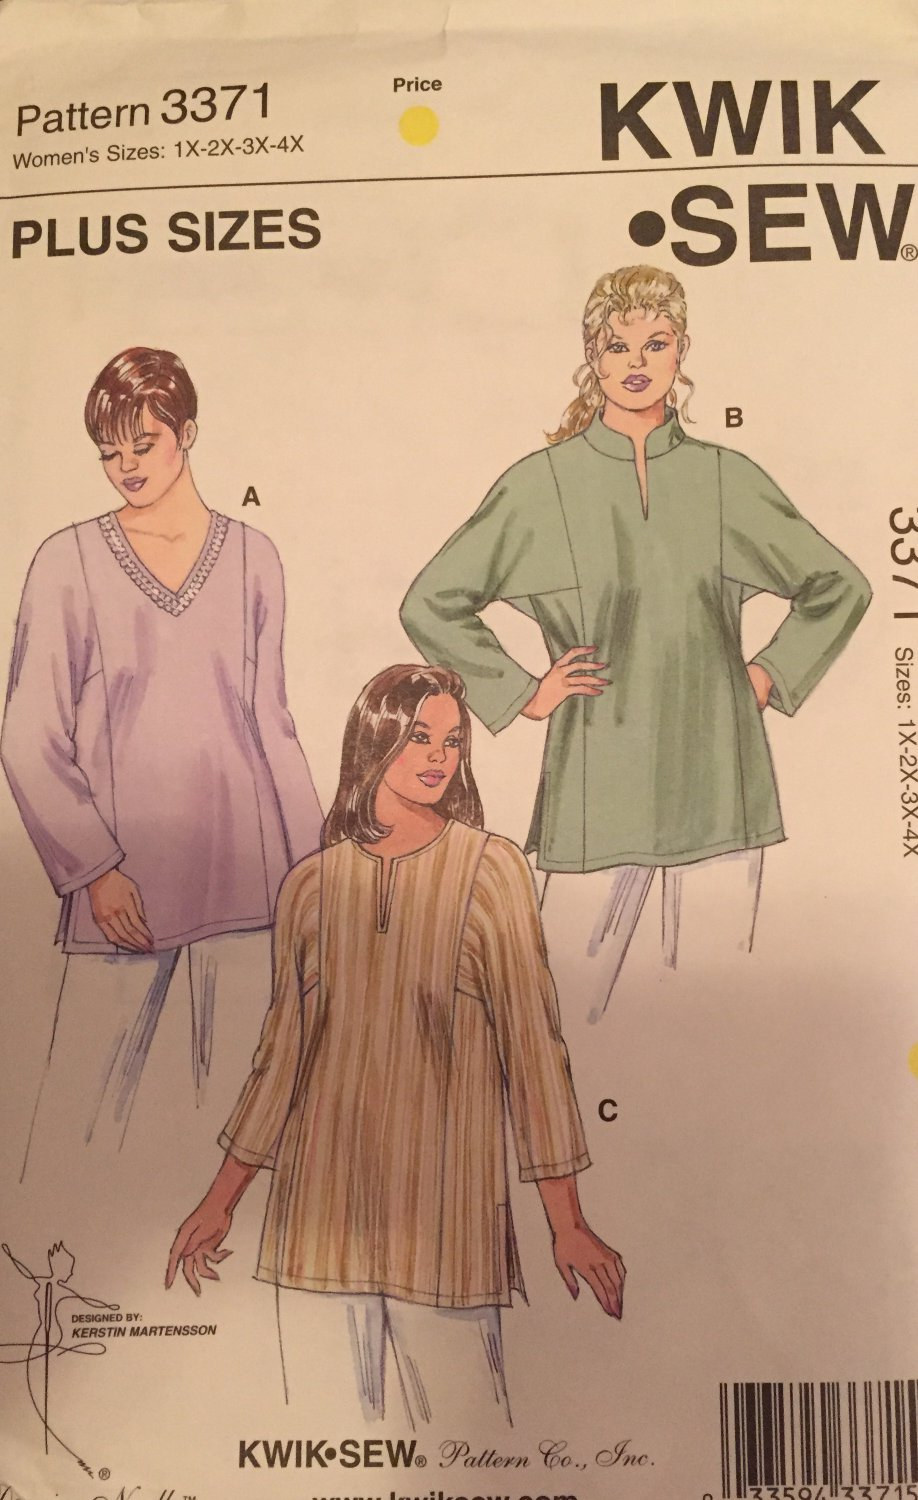 Vogue Patterns V8496 Misses' Petite Shirt, Size sizes 18 20 22 24 SOLD OUT!